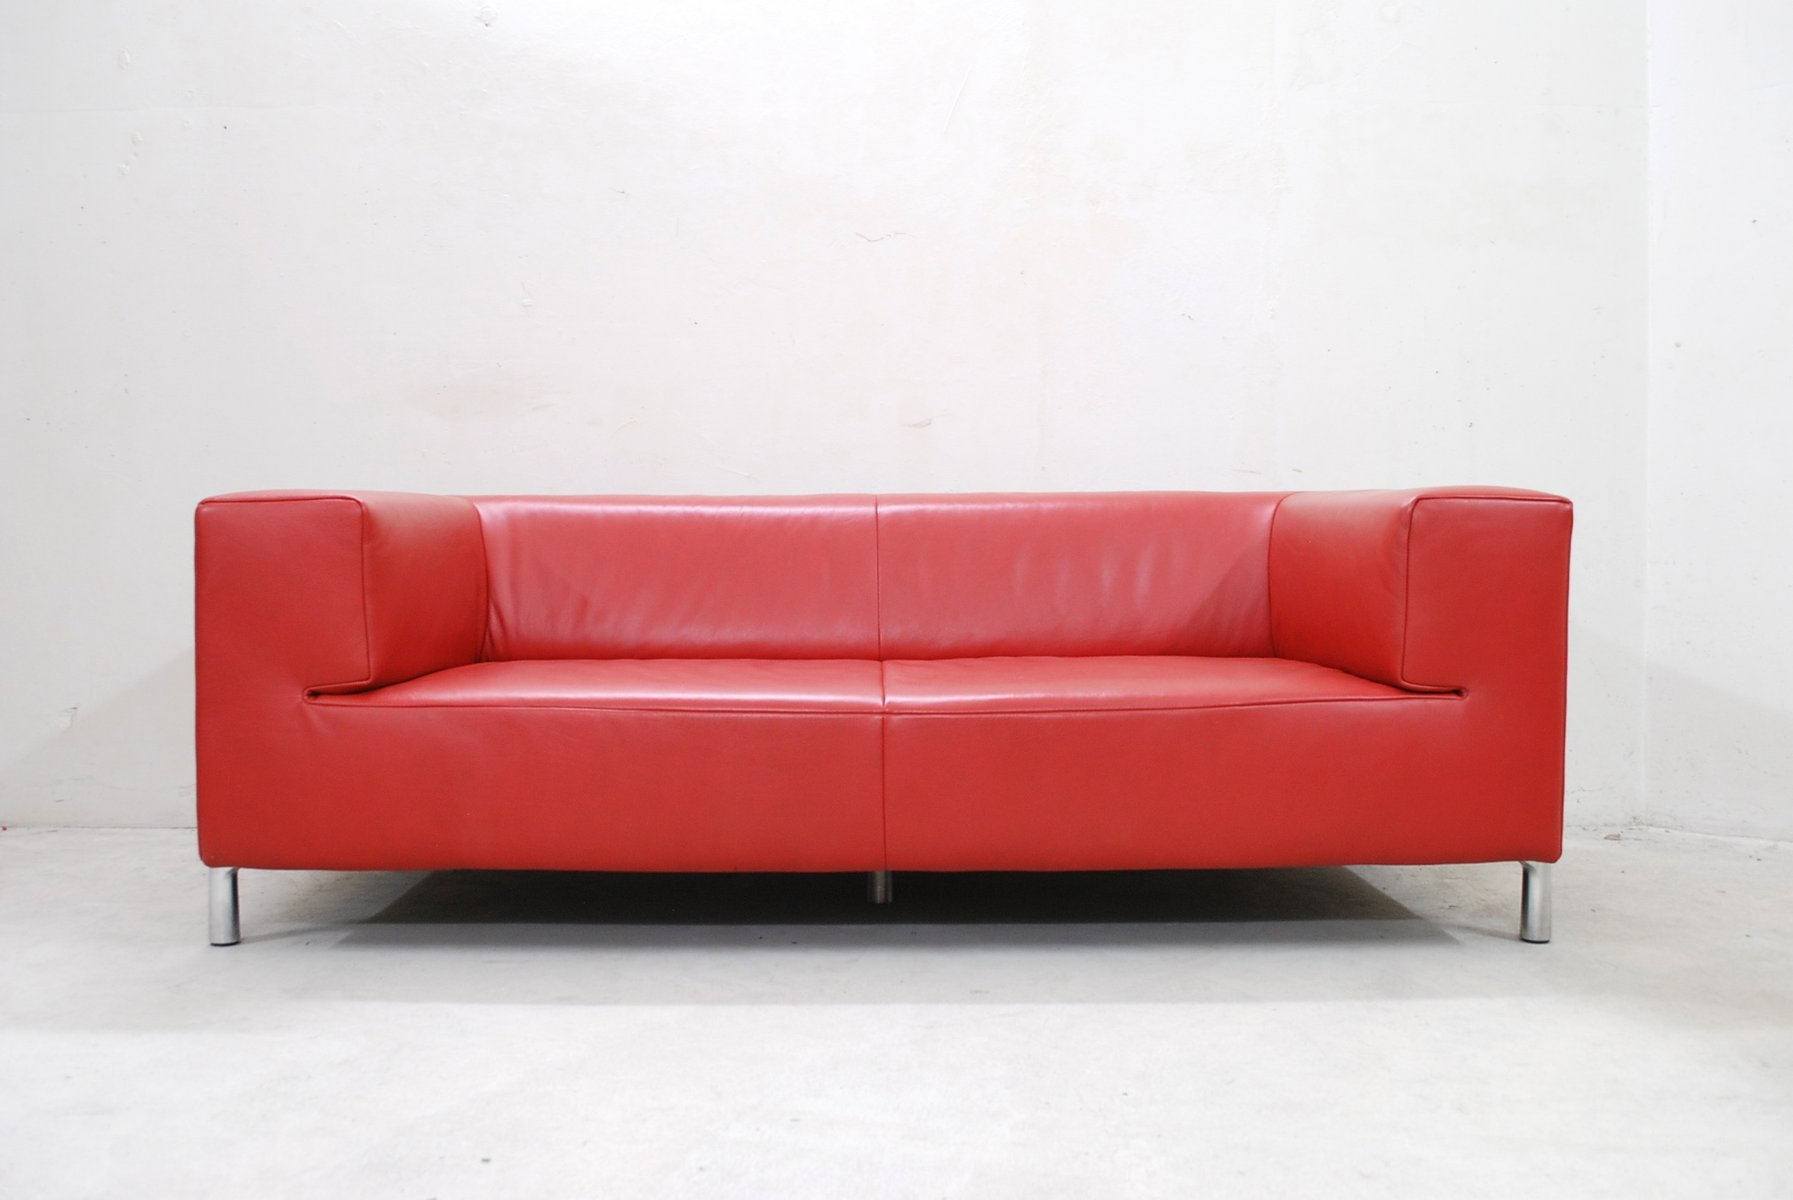 Vintage red leather genesis sofa from koinor for sale at pamono Rotes sofa kiel